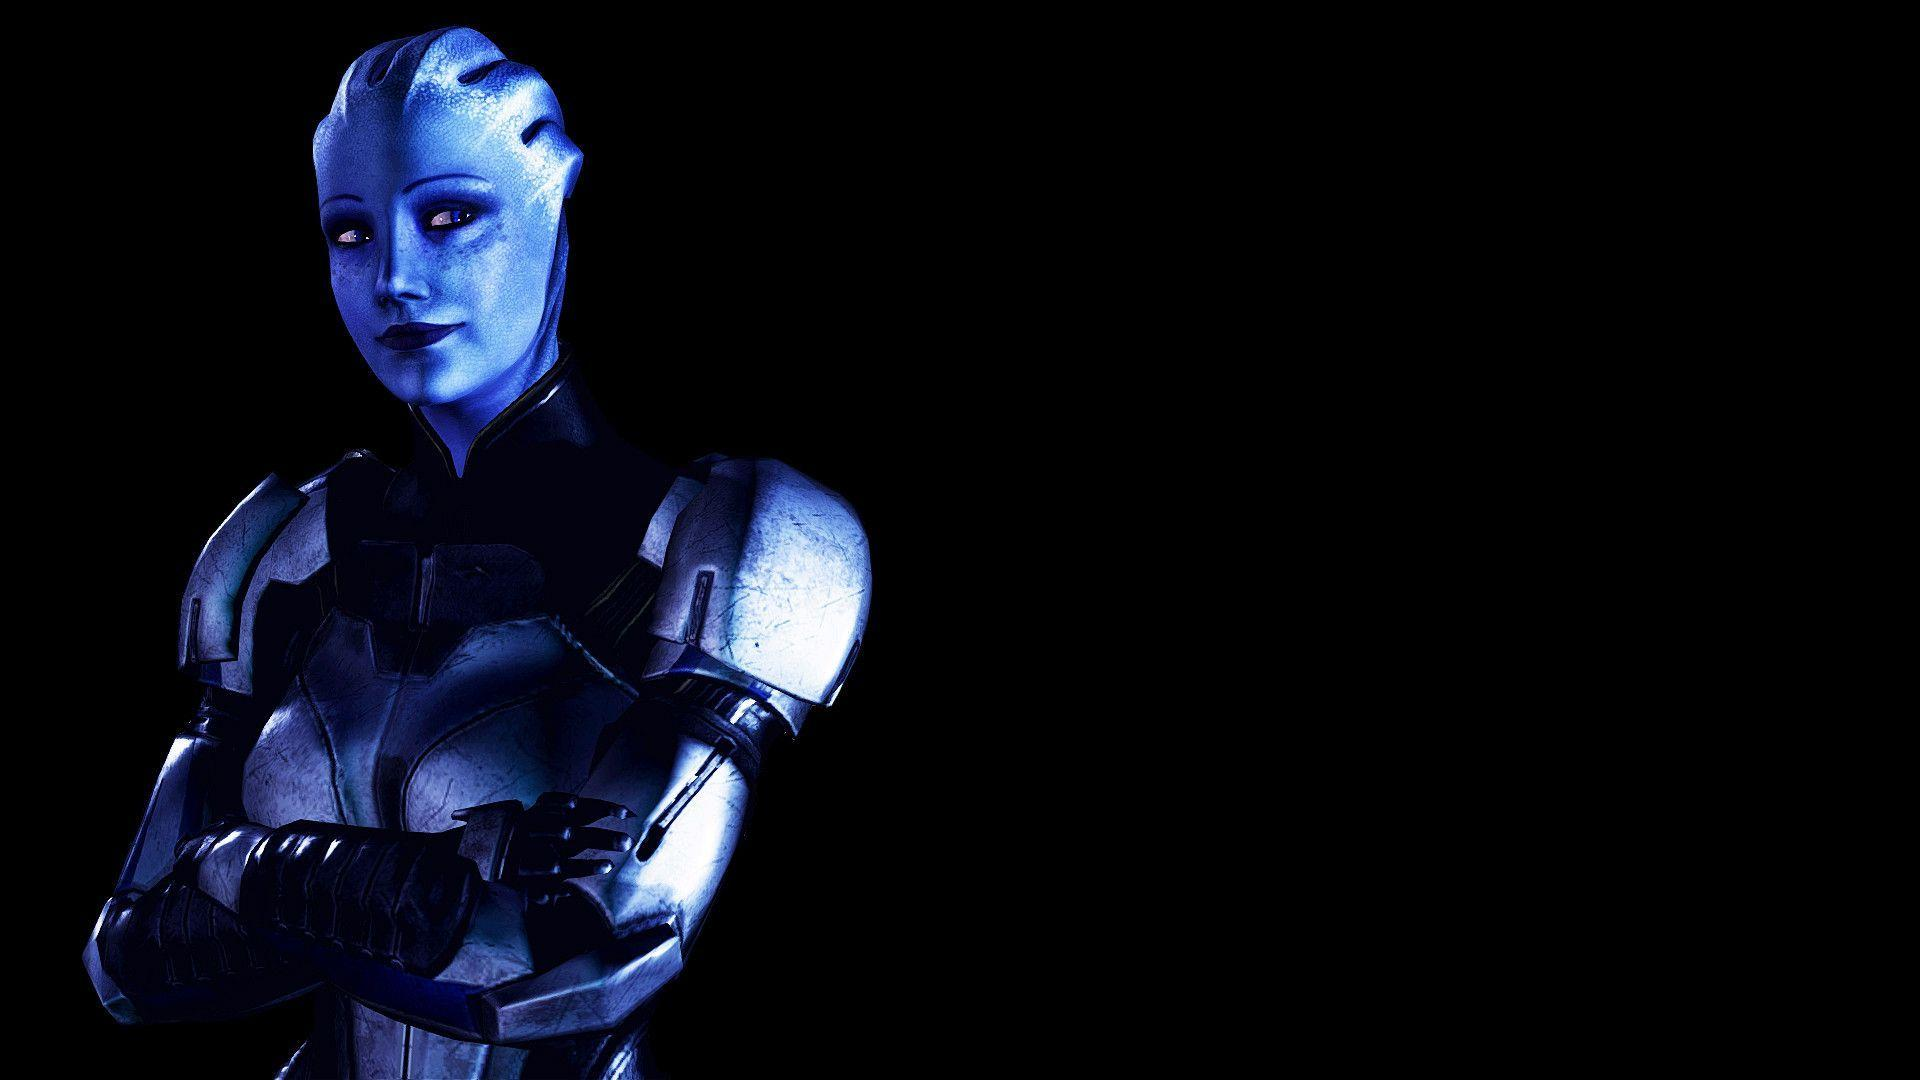 Liara T Soni Wallpapers Wallpaper Cave